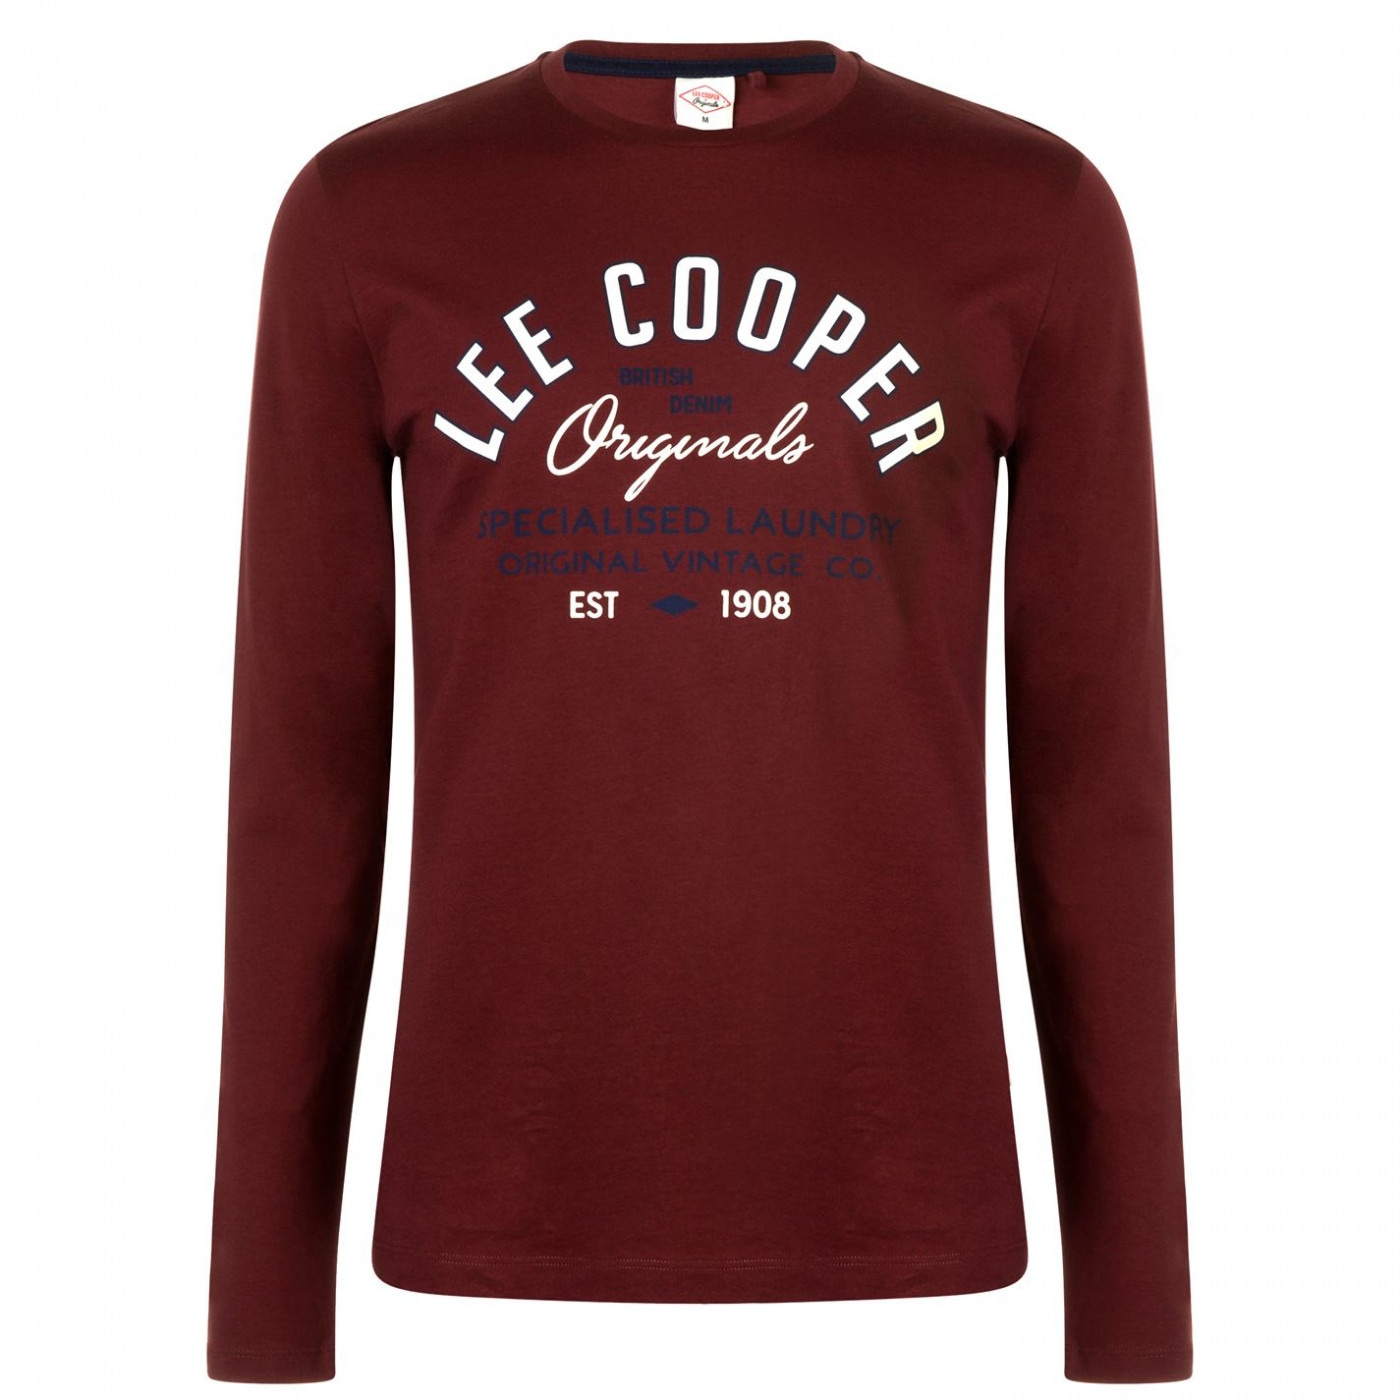 Men's T-Shirt Lee Cooper Long Sleeve Vintage